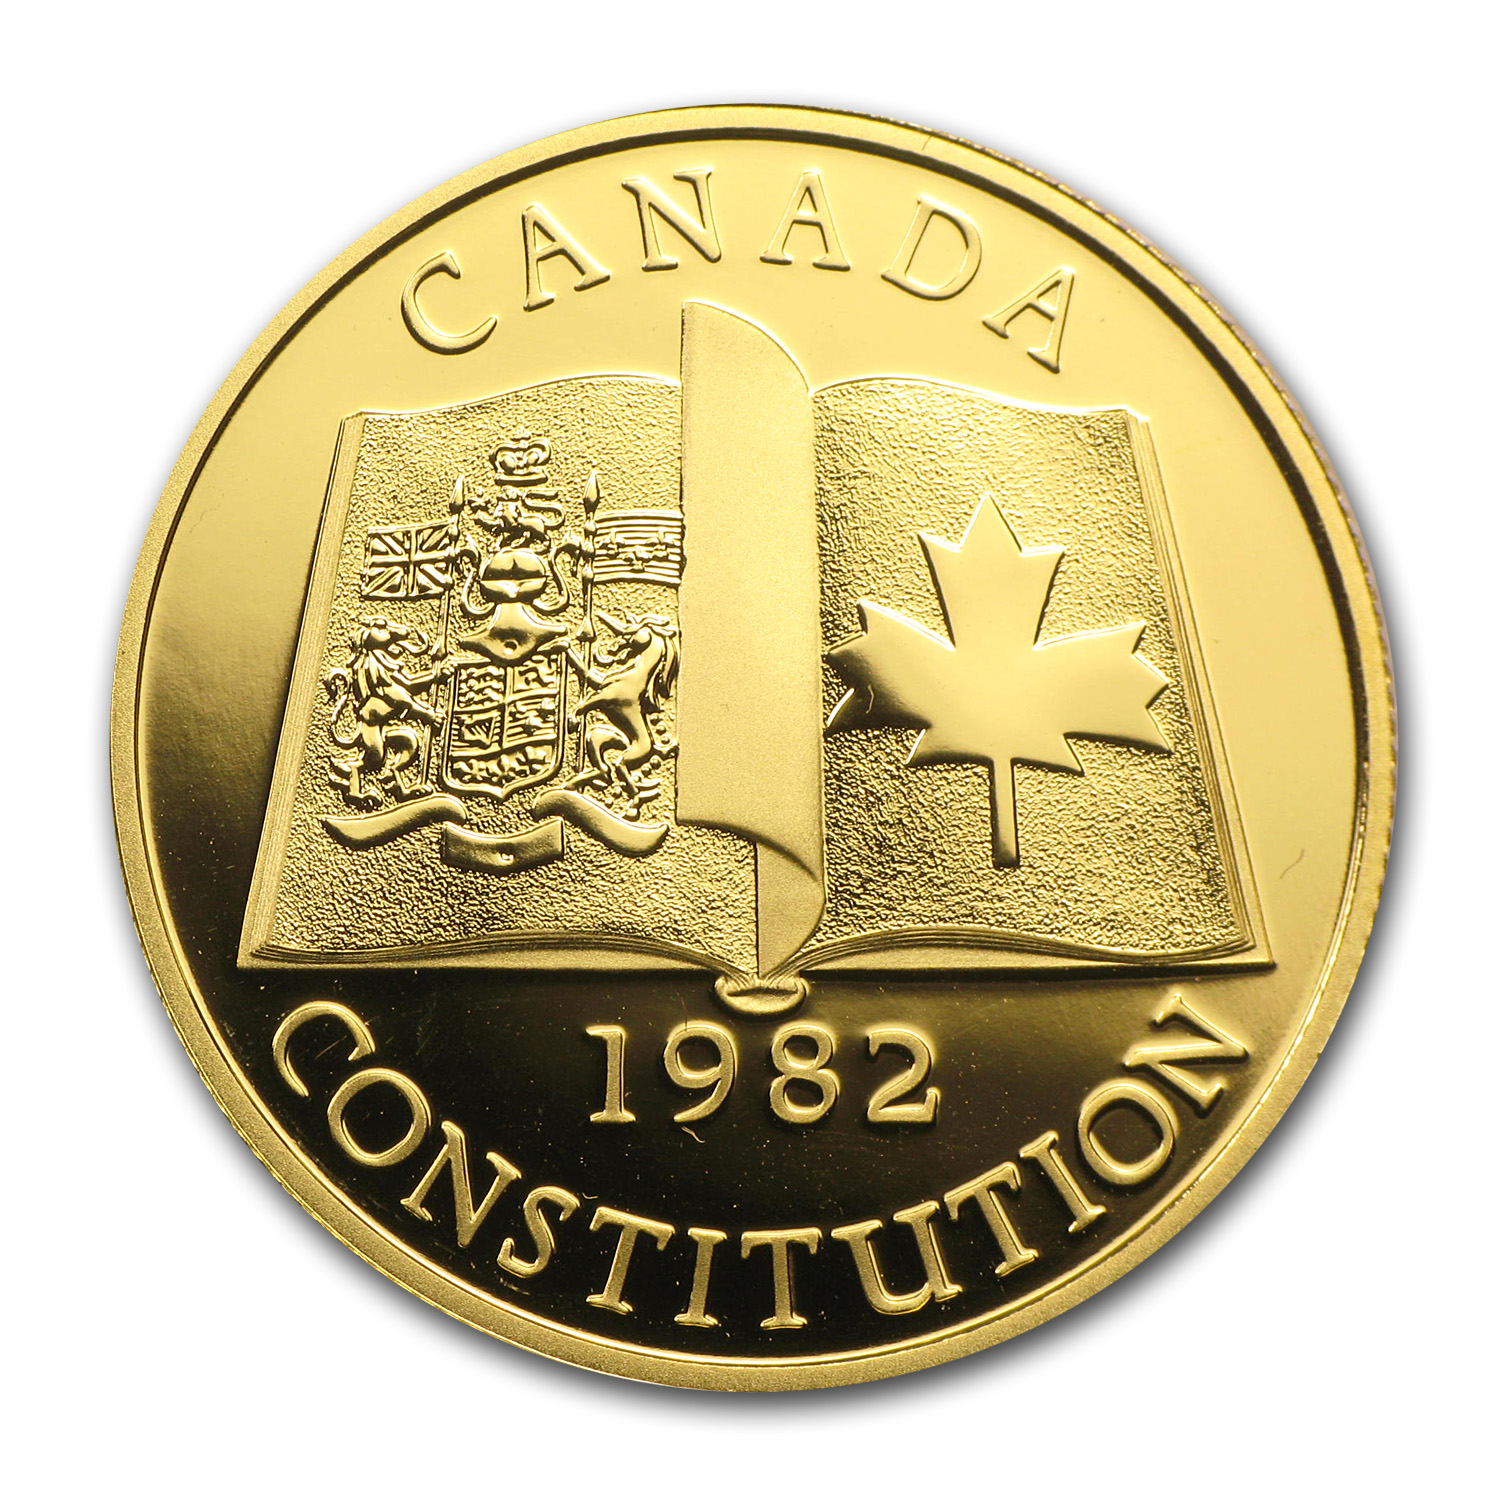 1982 Canada 1/2 oz Proof Gold $100 Constitution